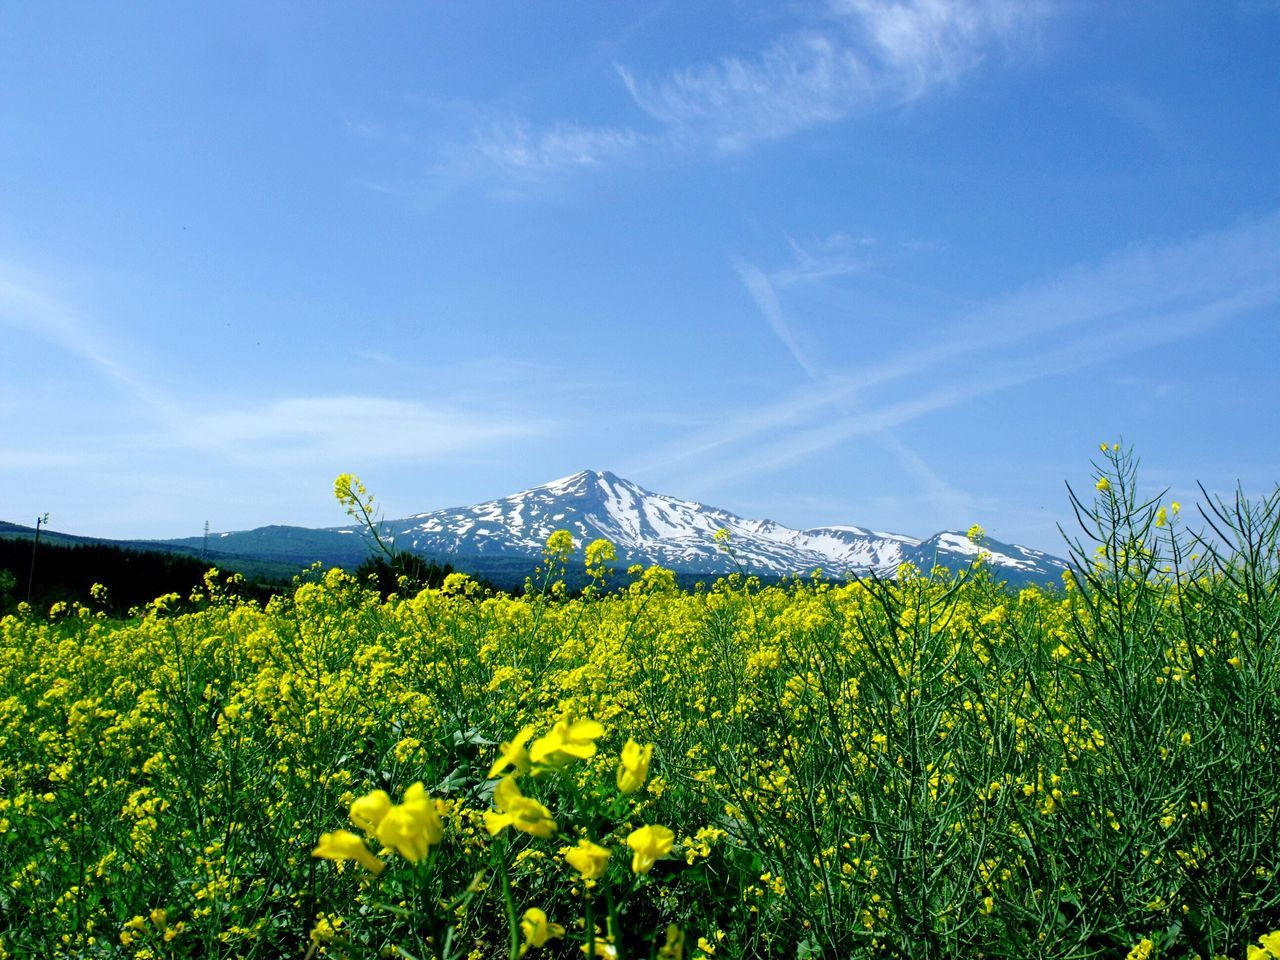 EyeEm Best Shots EyeEm Flower EyeEm Gallery Hello World Sky_collection Mountain View Flower Photography Yellow Flowers Relaxing Sky And Clouds Enjoying Life 菜の花